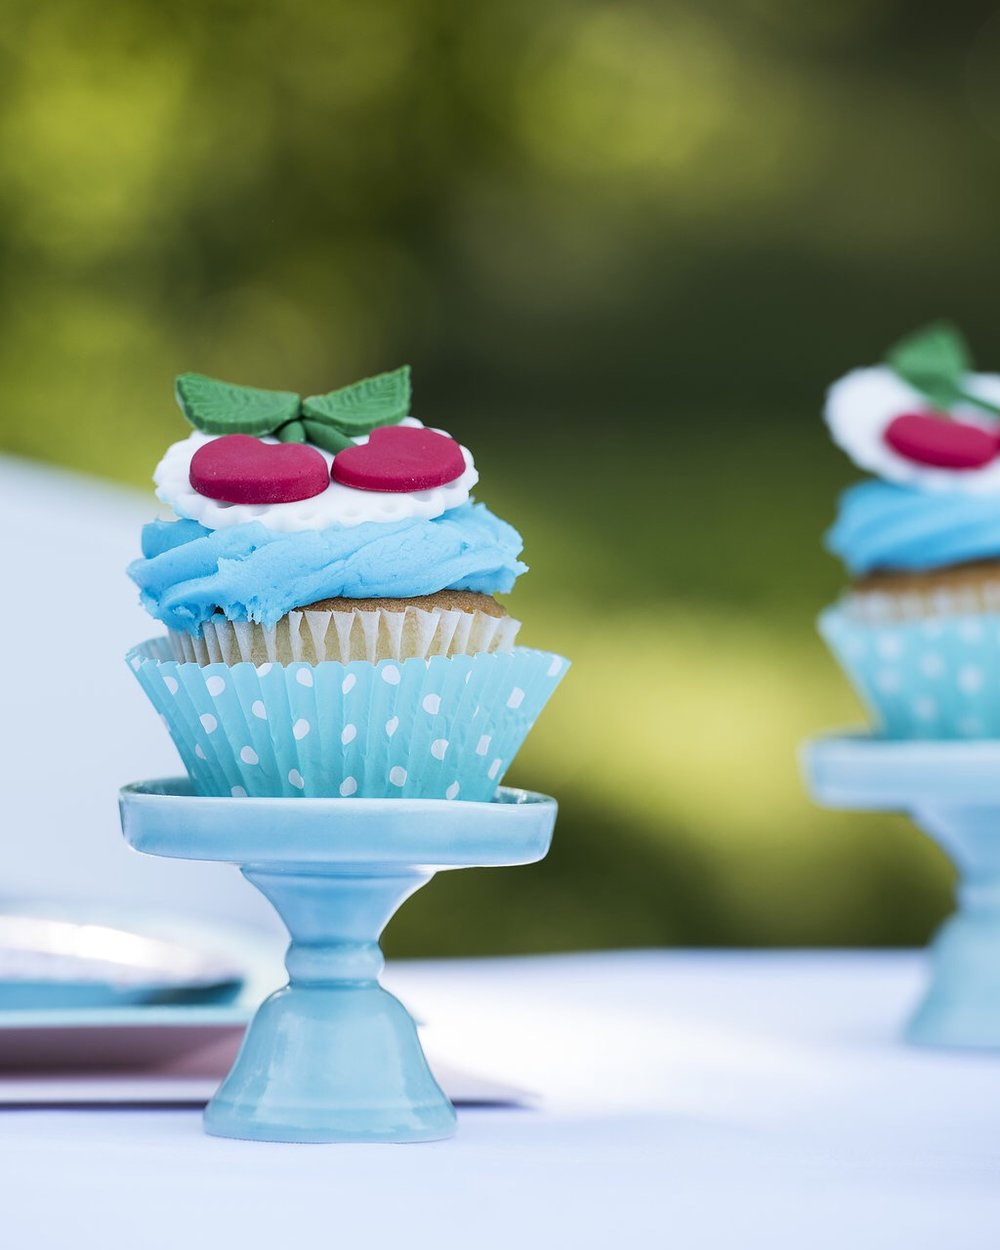 The cutest blue cupcake stands for Cherry on Top themed birthday party cupcakes. Created by Mint Event Design in Austin Texas www.minteventdesign.com #summerparties #partyideas #kidspartyideas #partyplanning #birthdaypartyideas #kidsparty #cherryparty #cupcakes